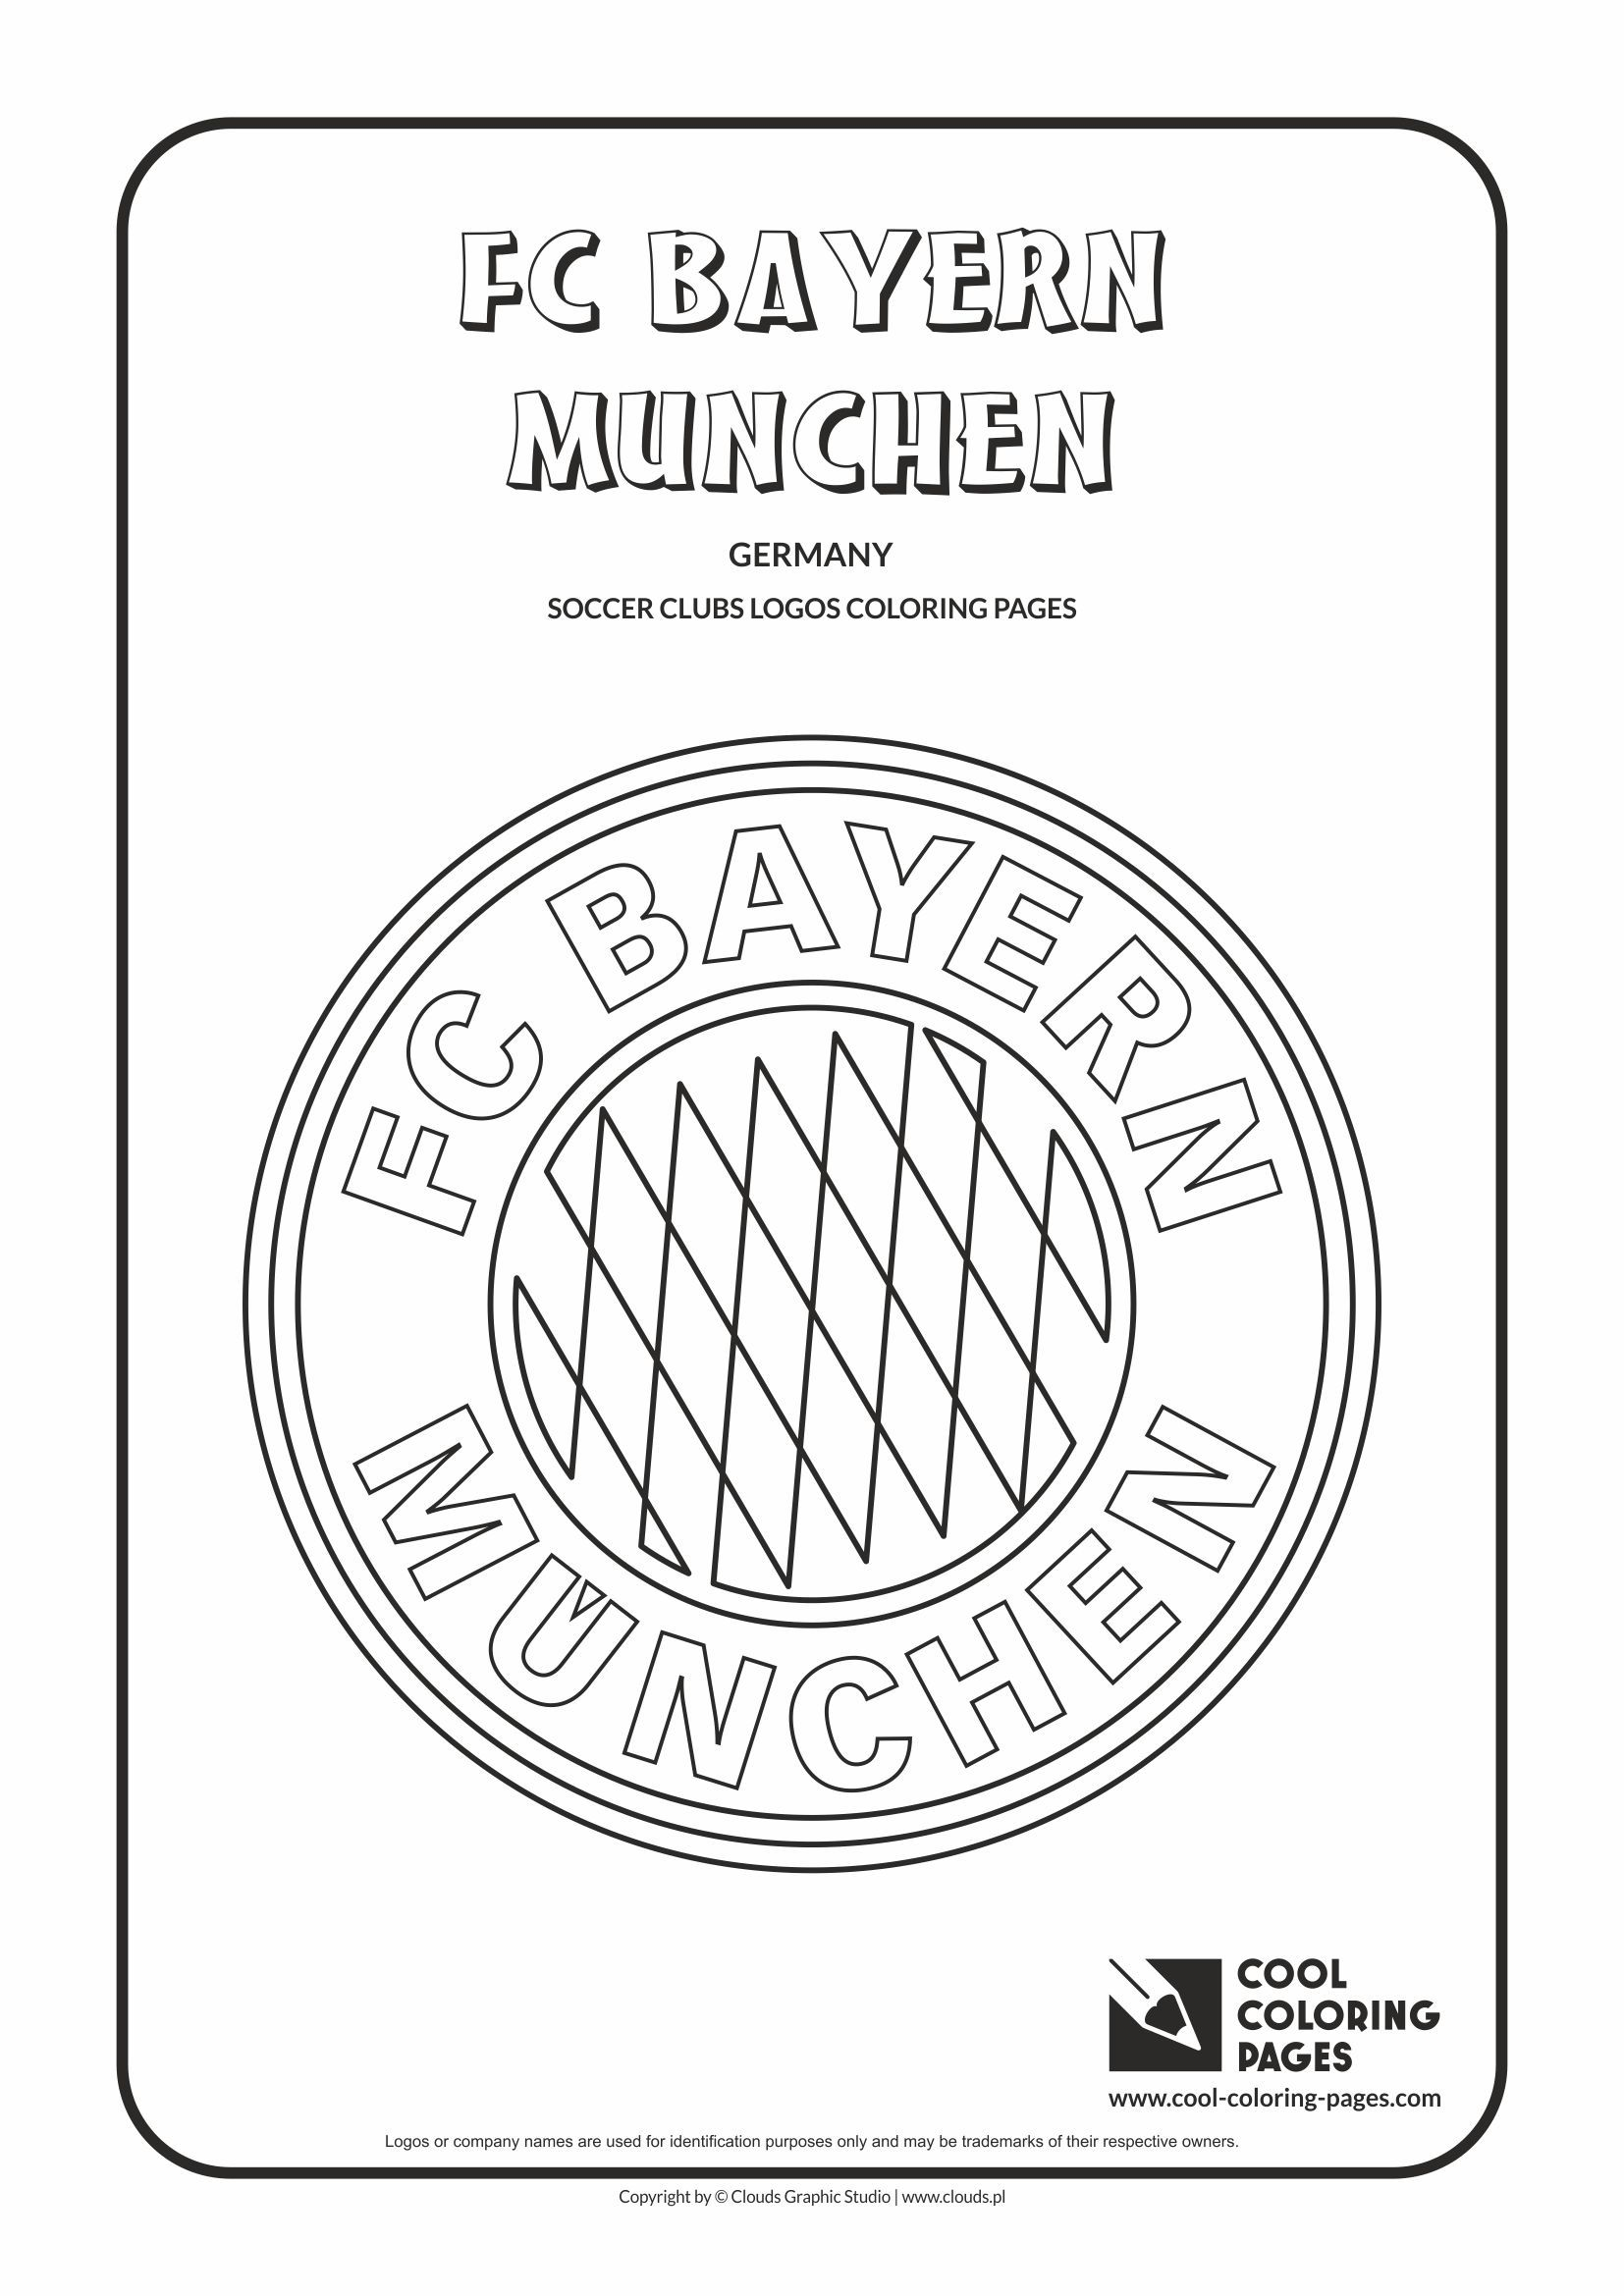 Cool Coloring Pages Soccer Club Logos Fc Bayern Munchen Logo